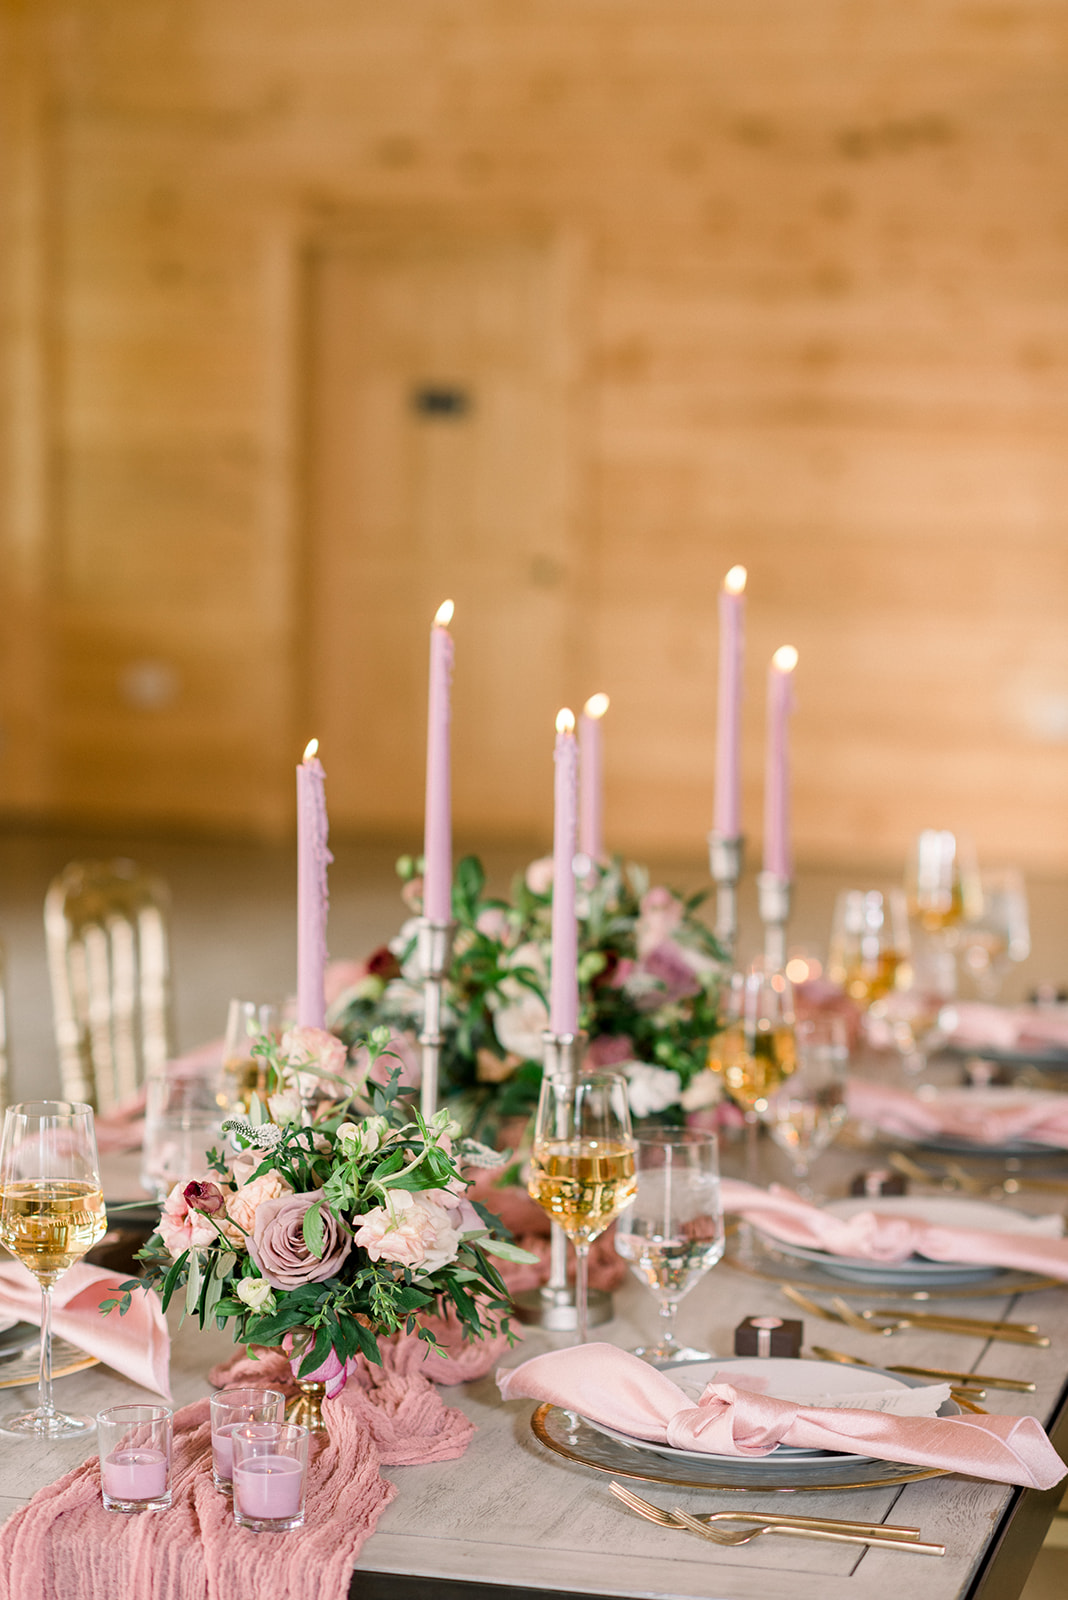 Table setting design for rustic elegance wedding inspiration mauve and pink table decor